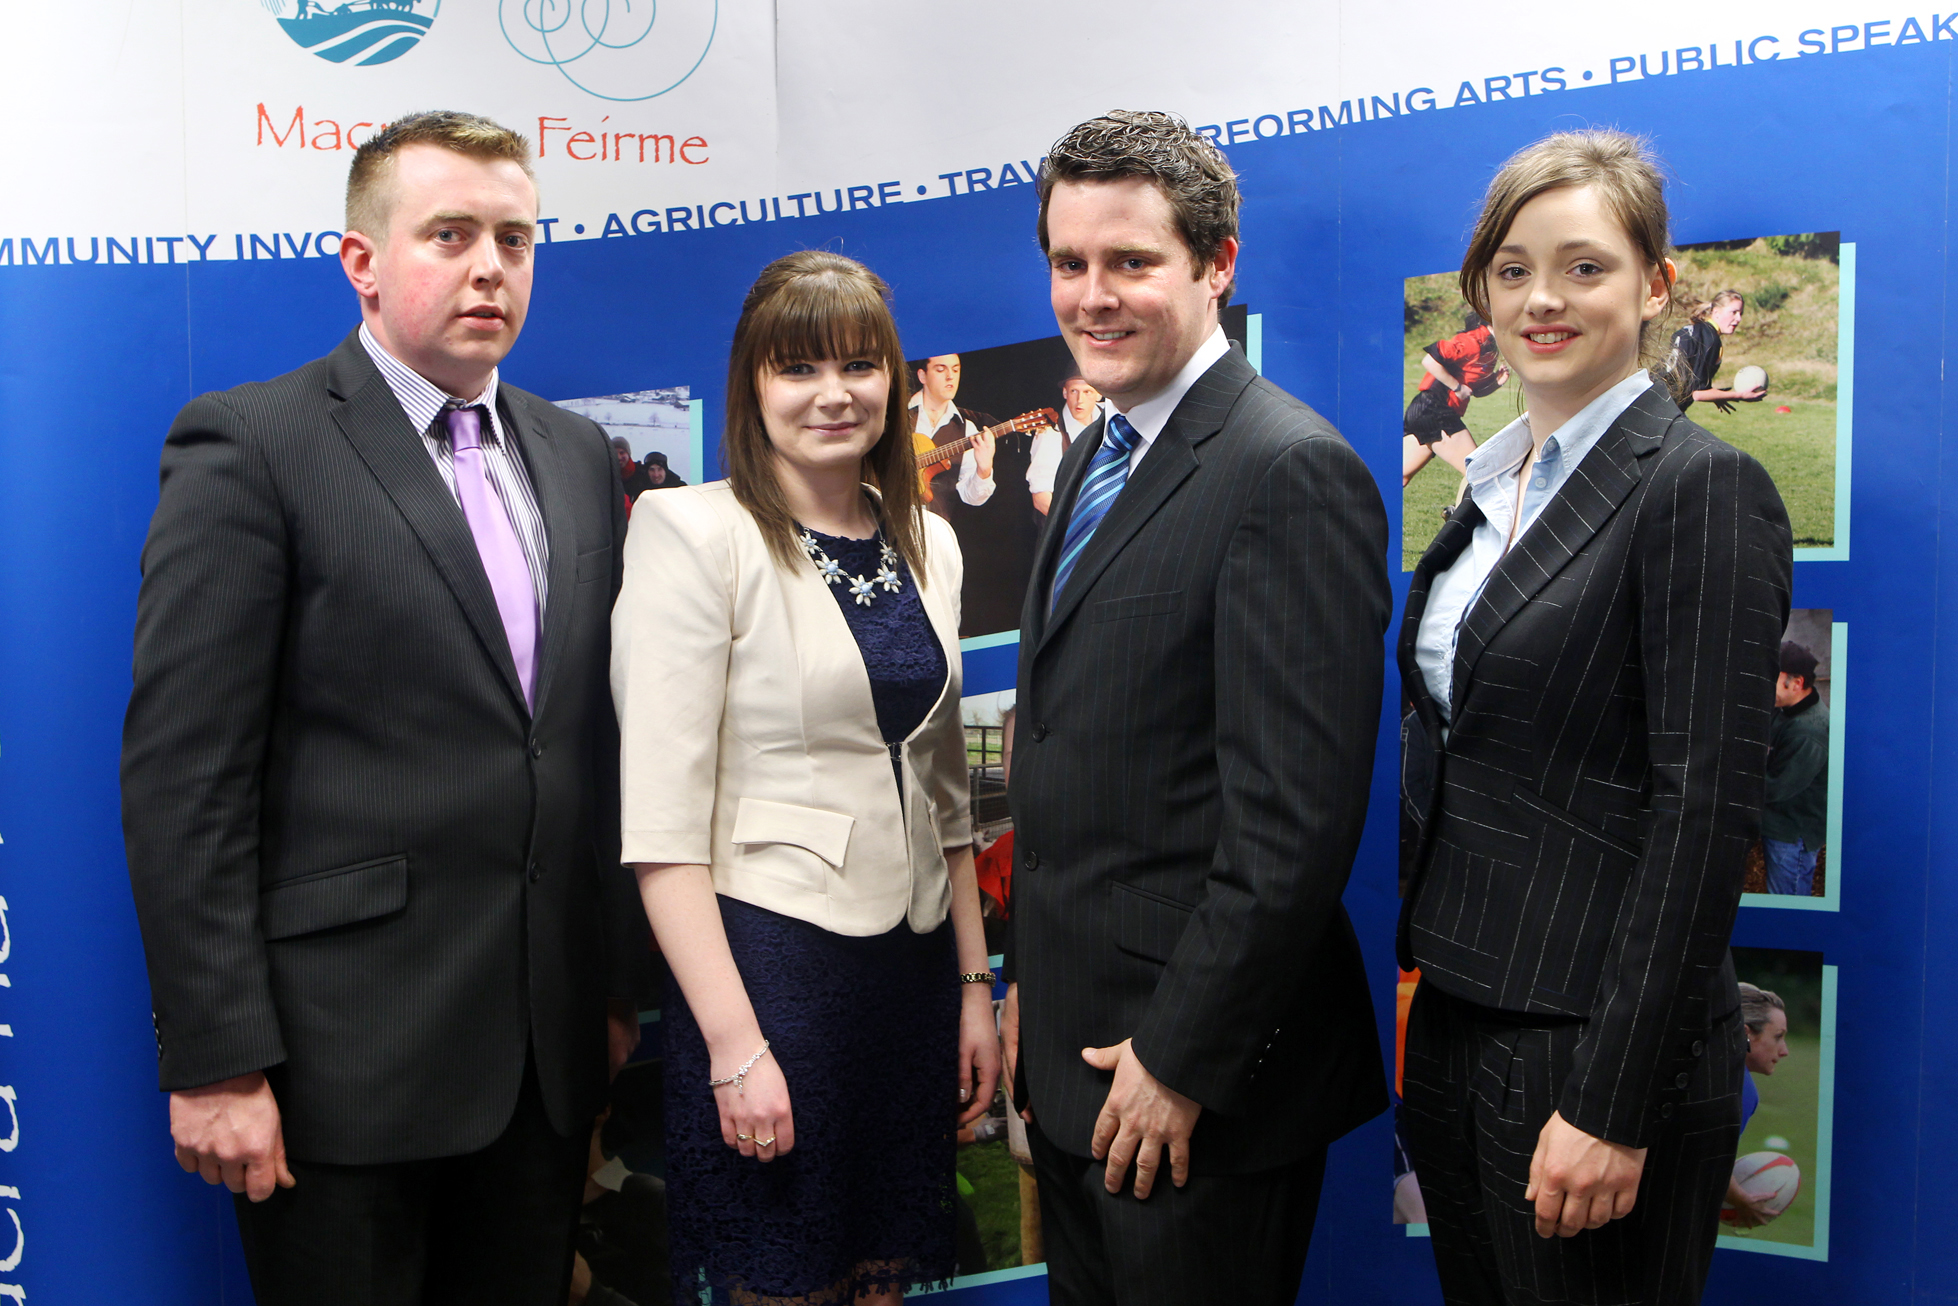 National President Elect, Sean Finan, Castlerea Macra, Roscommon; (second from right) with (left to right) Munster Vice President, Gerard Griffin, Mitchelstown Macra, Avondhu, Cork; North West Vice President, Caroline O'Dowd, South Sligo Macra; and Leinster Vice President, Odile Evans, Johnstown/ Coolgreaney Macra, Wicklow.